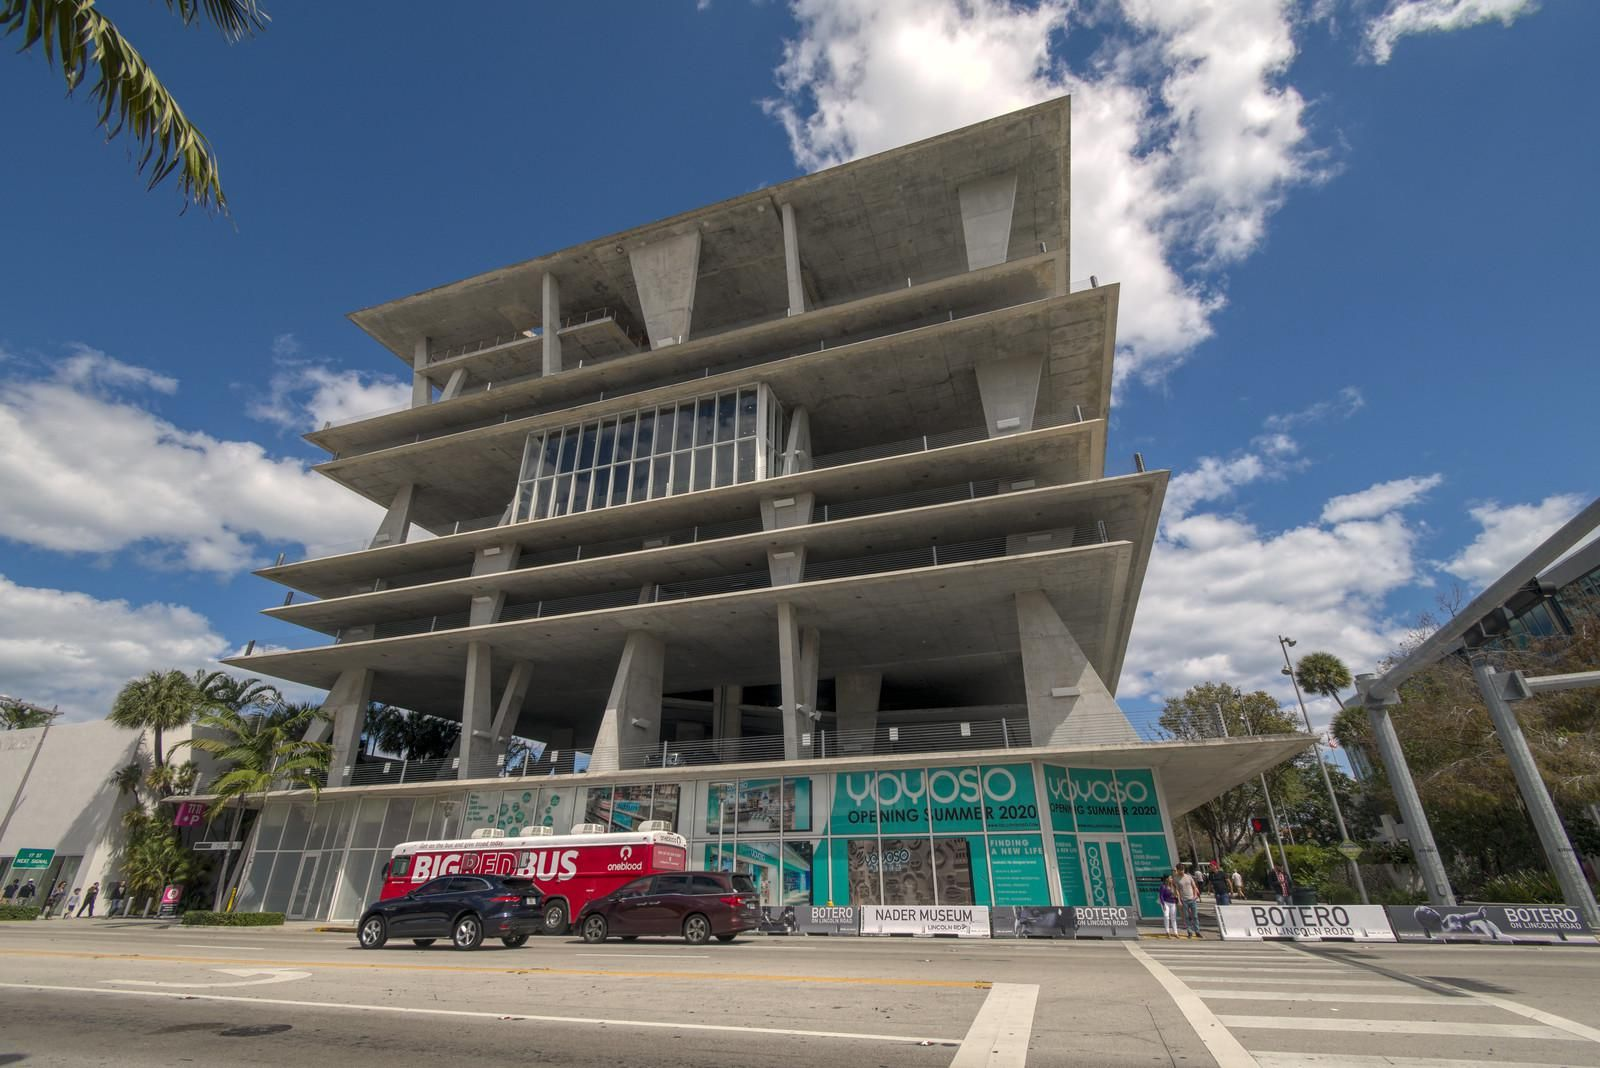 Brutalist Parking Garage In Miami Beach Designed By Herzog And De Meuron 16001068 In 2020 Architecture Beach Design Beautiful Architecture